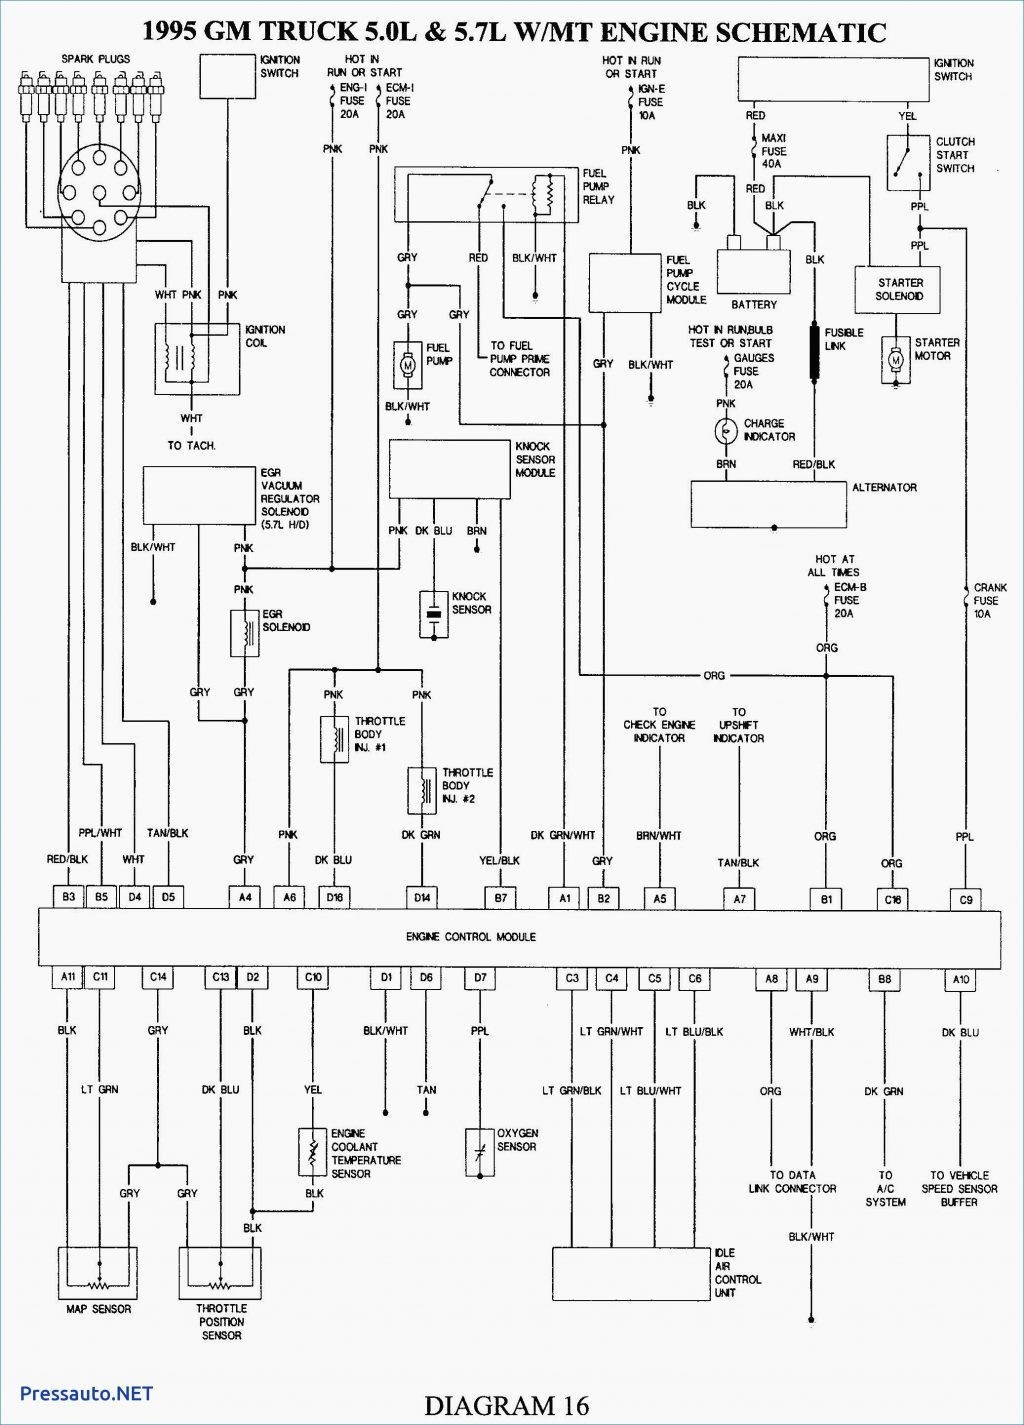 1994 Chevy Kodiak Wiring Diagram